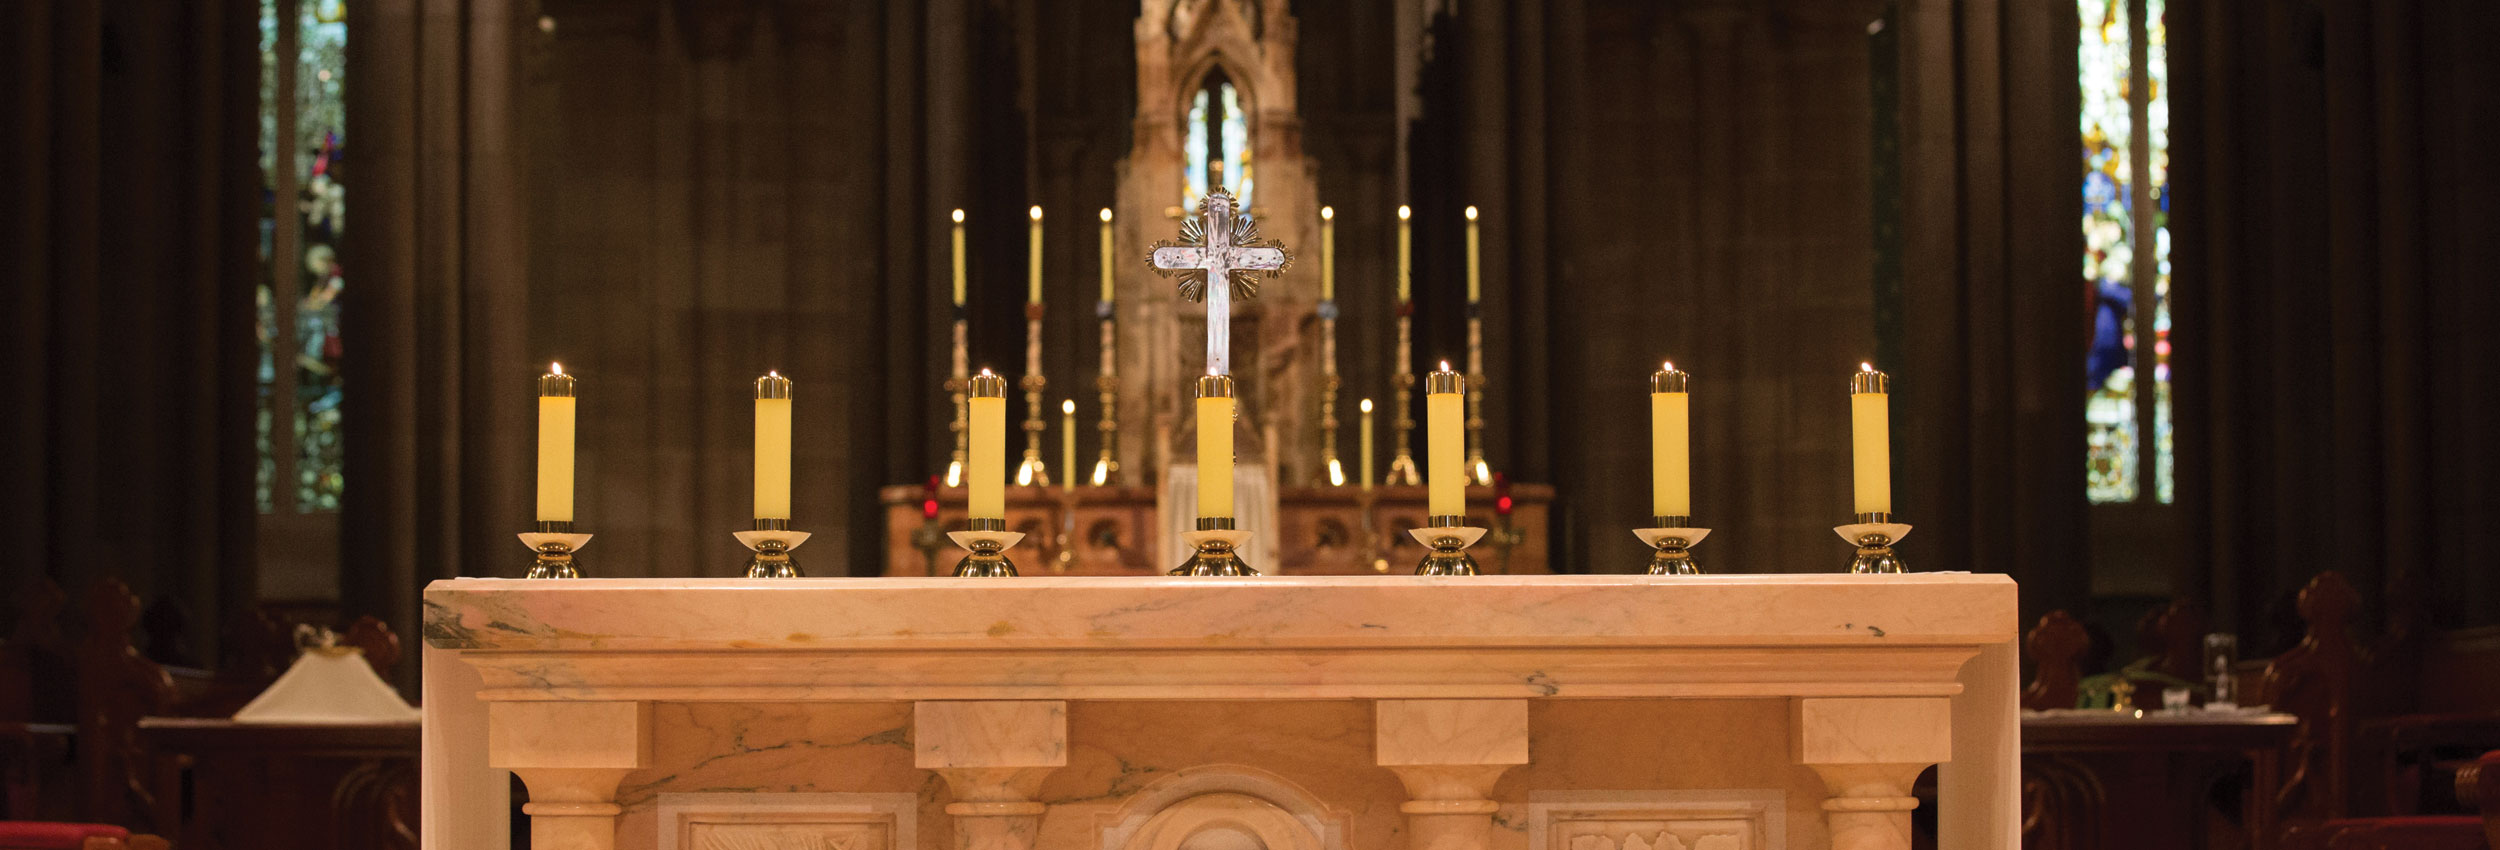 90th anniversary celebration at St Patrick's Cathedral